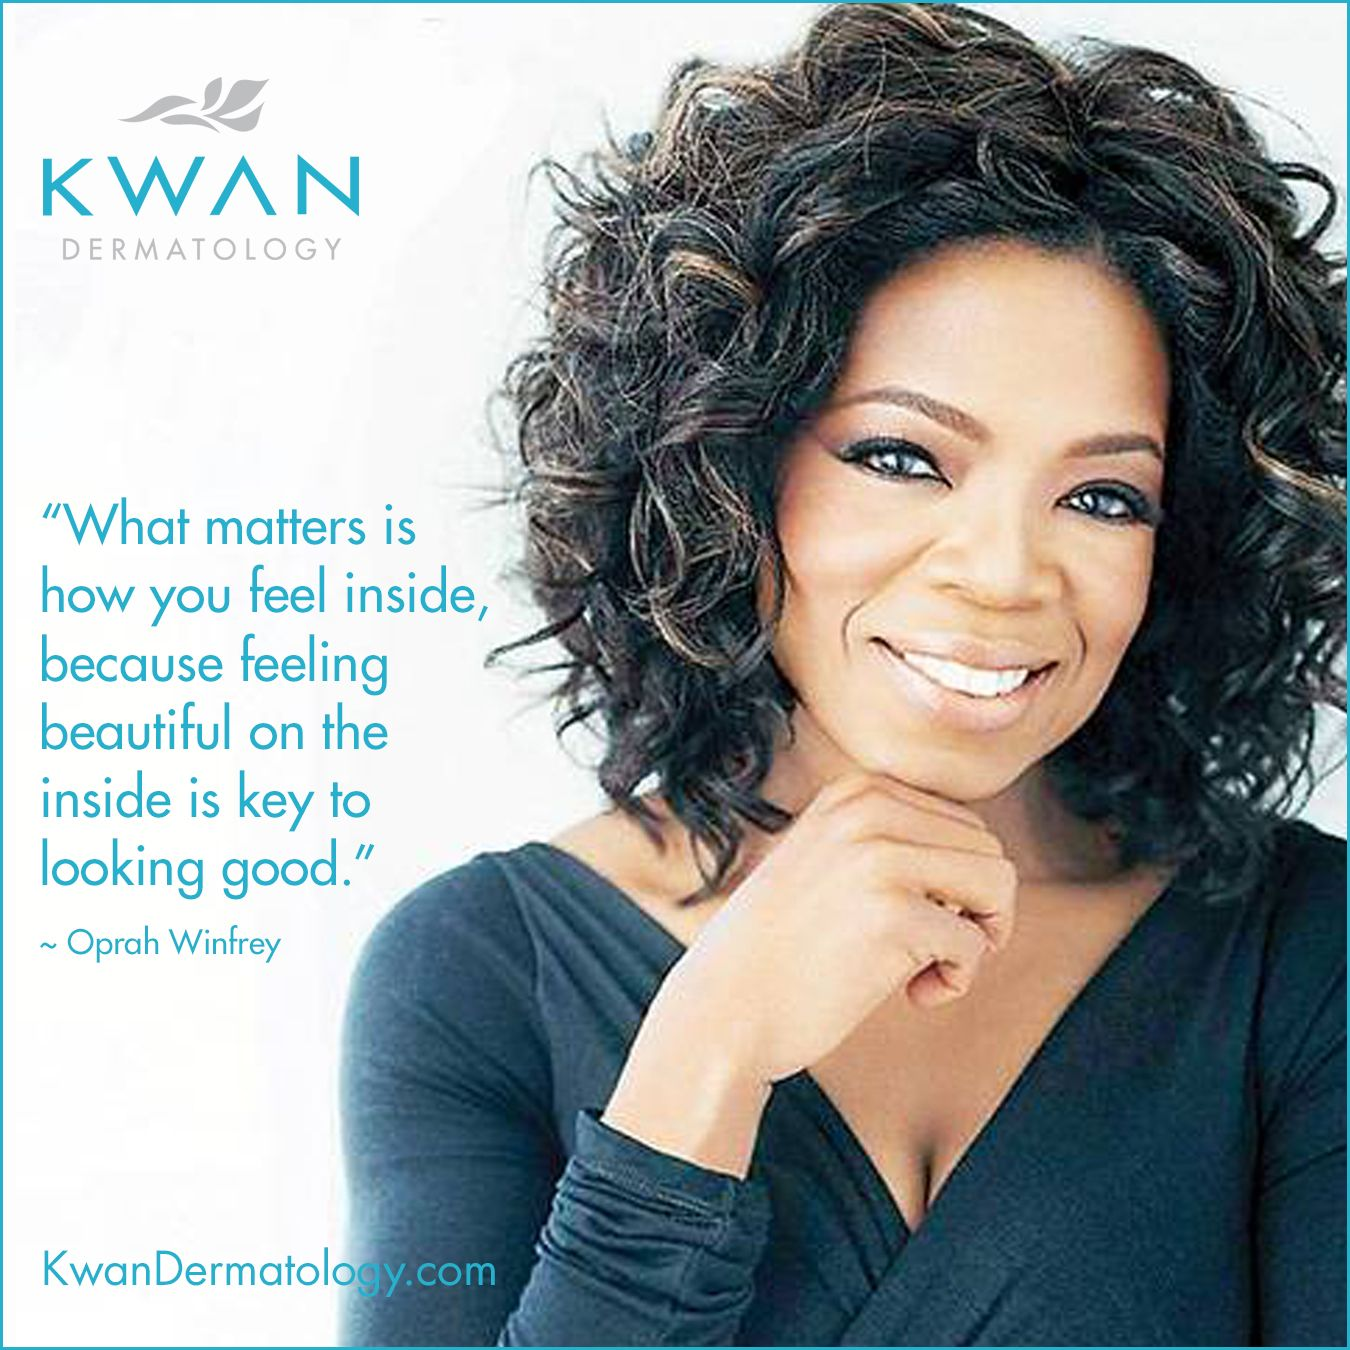 The Kwan Dermatology team loves helping our patients feel confident